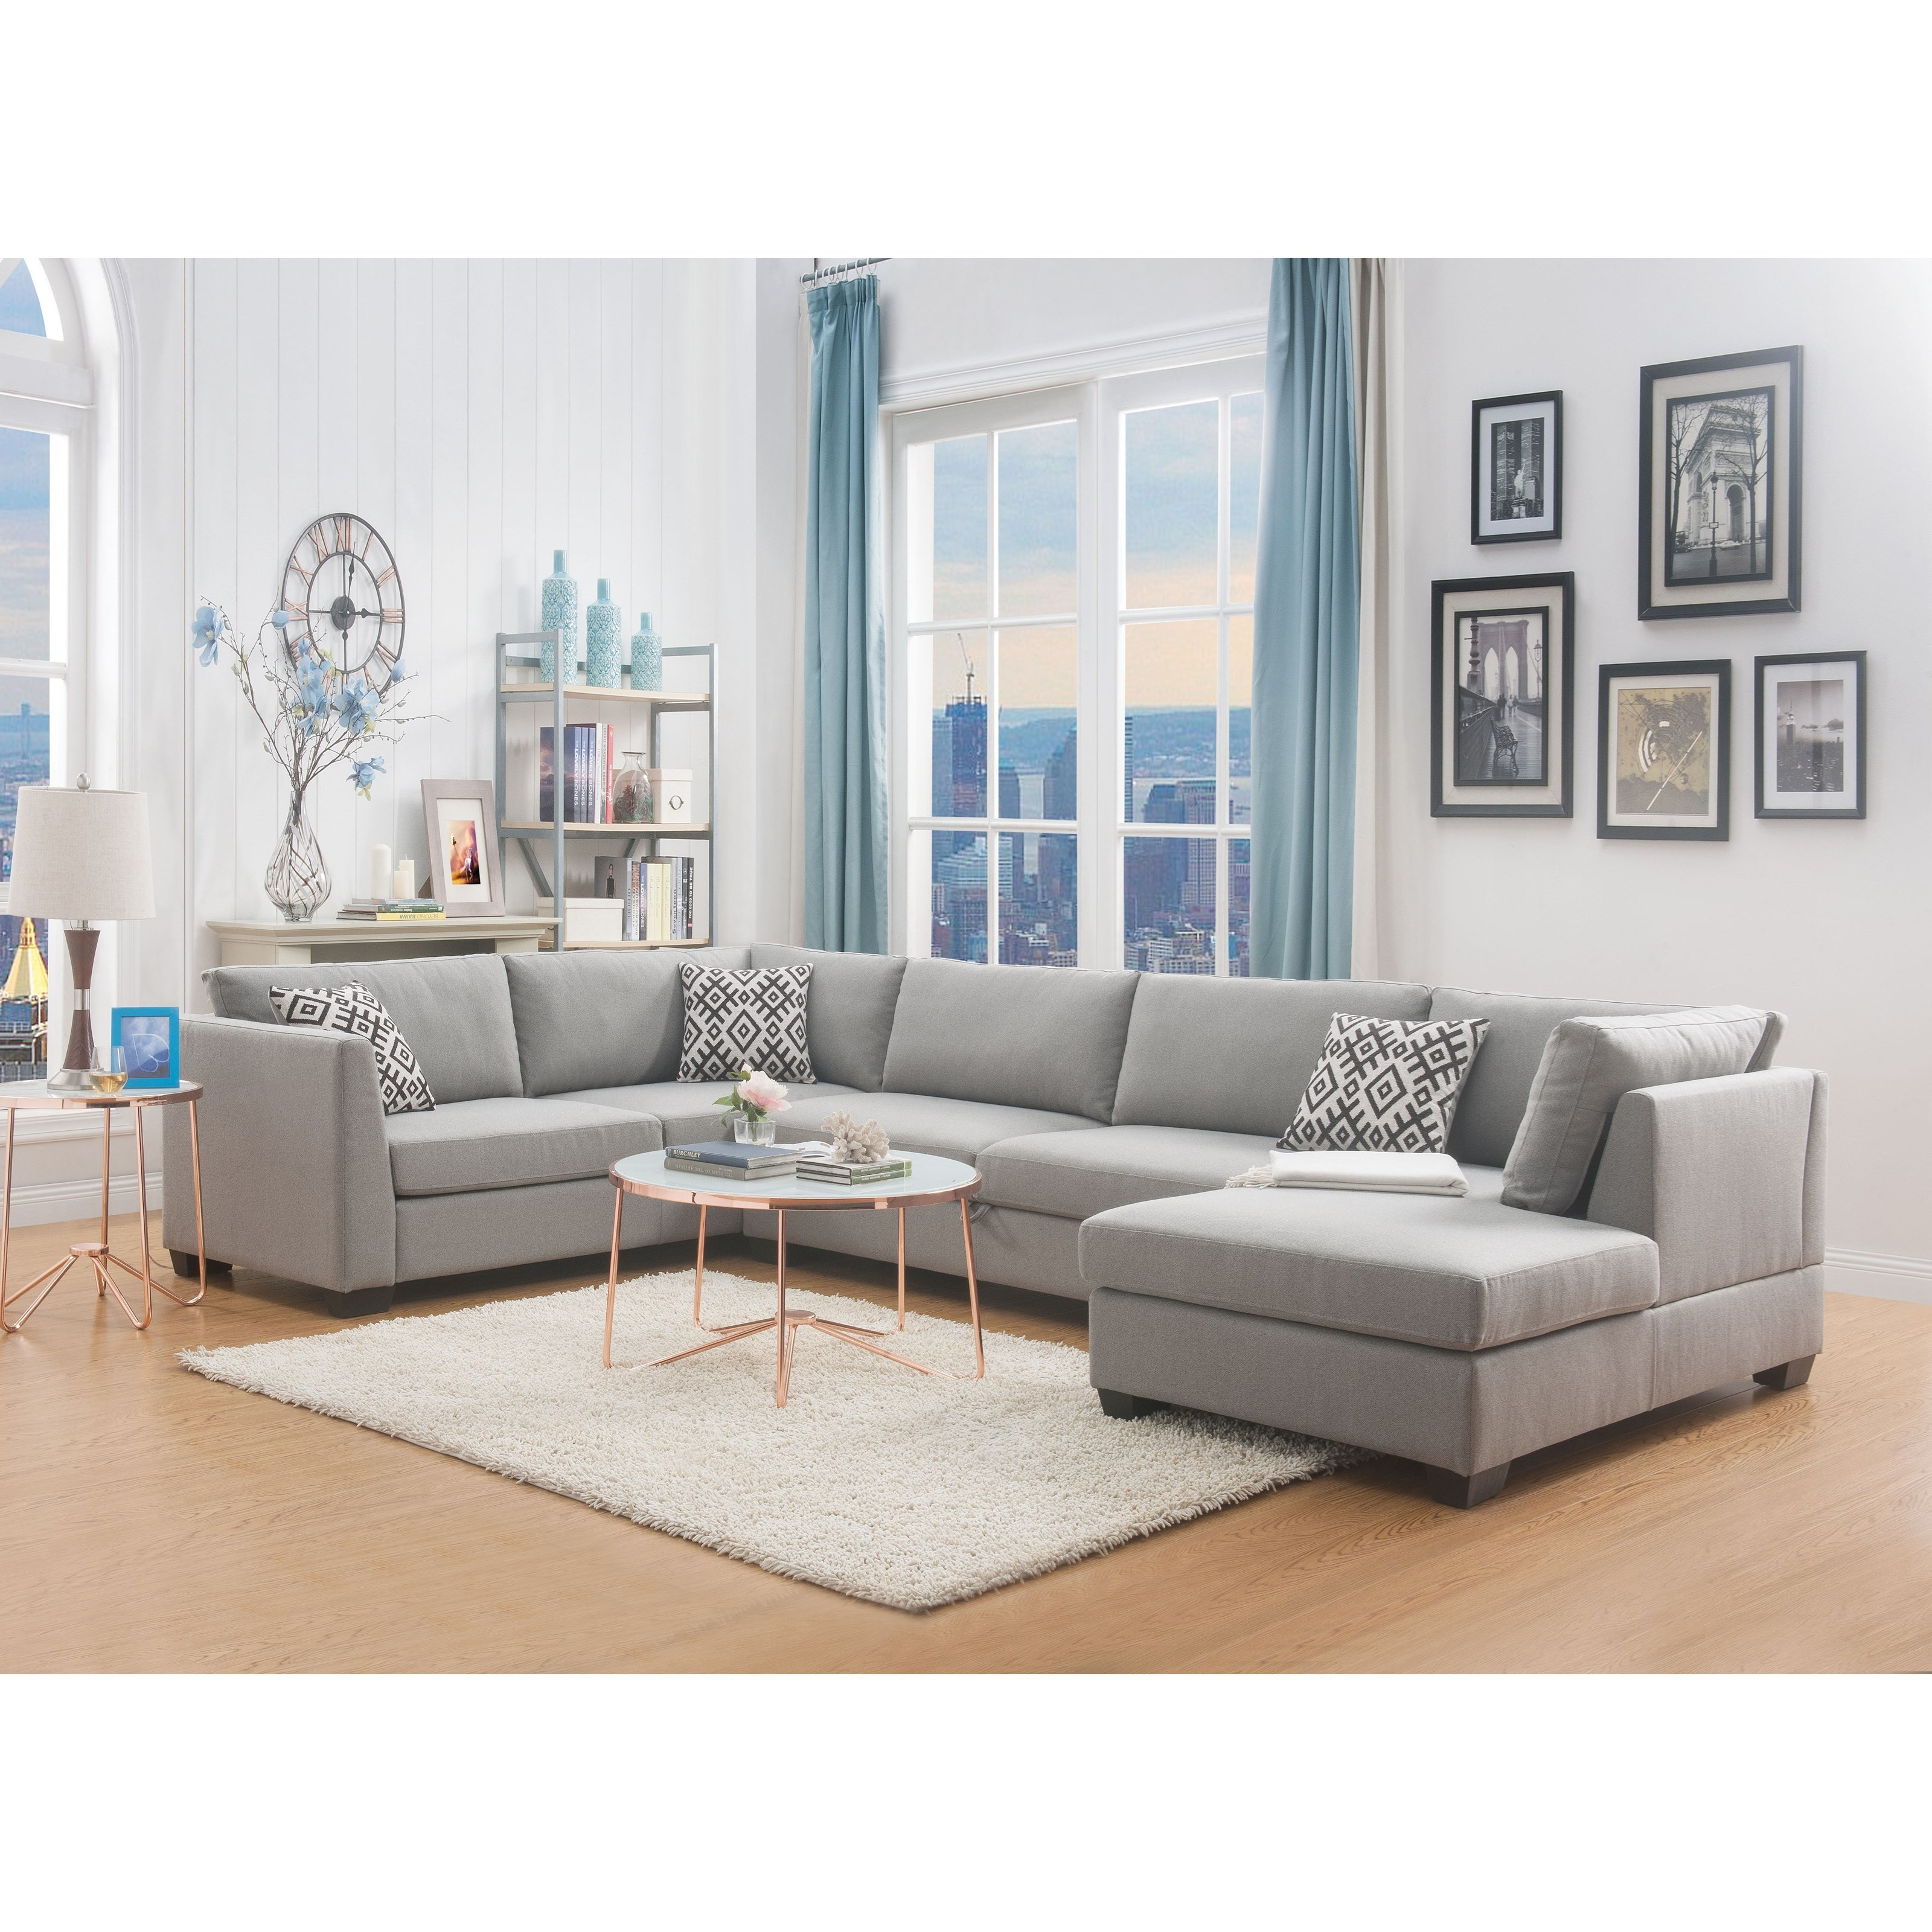 Enjoyable Acme Furniture Cyclamen 53105 Contemporary 4 Seat Sectional Bralicious Painted Fabric Chair Ideas Braliciousco